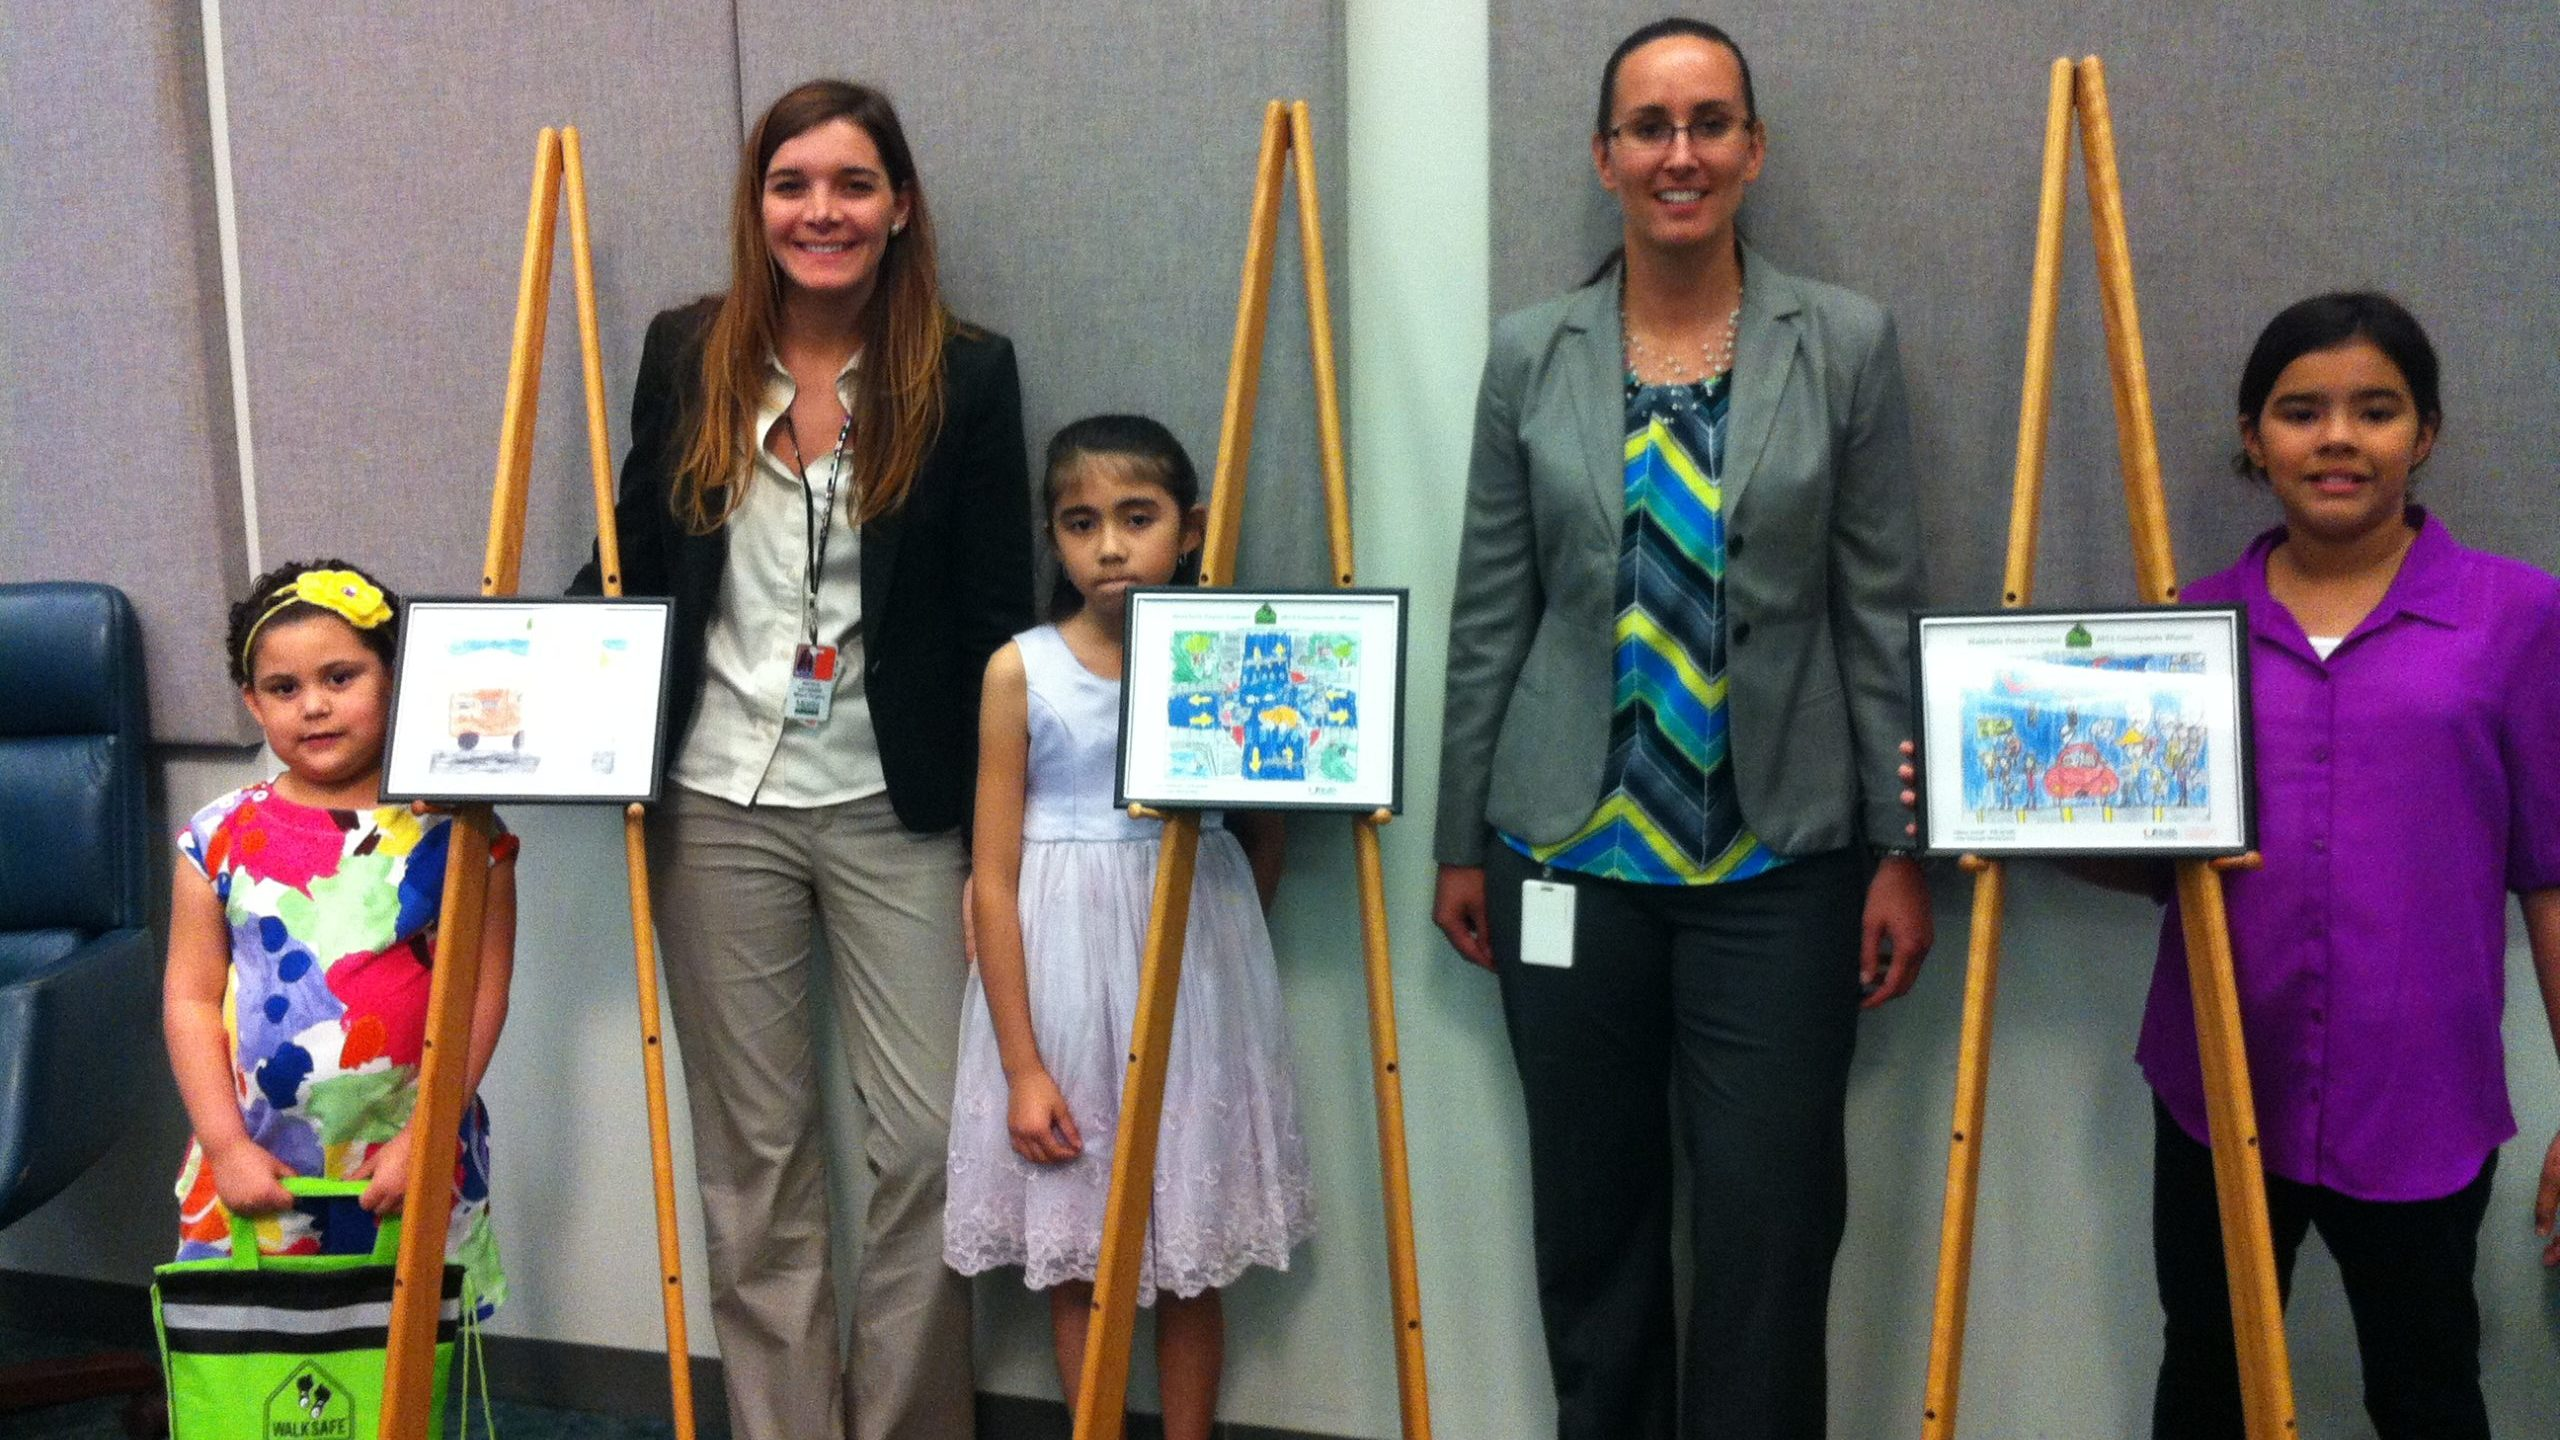 Three Orange County Students Winners In Statewide Pedestrian Safety Poster Contest